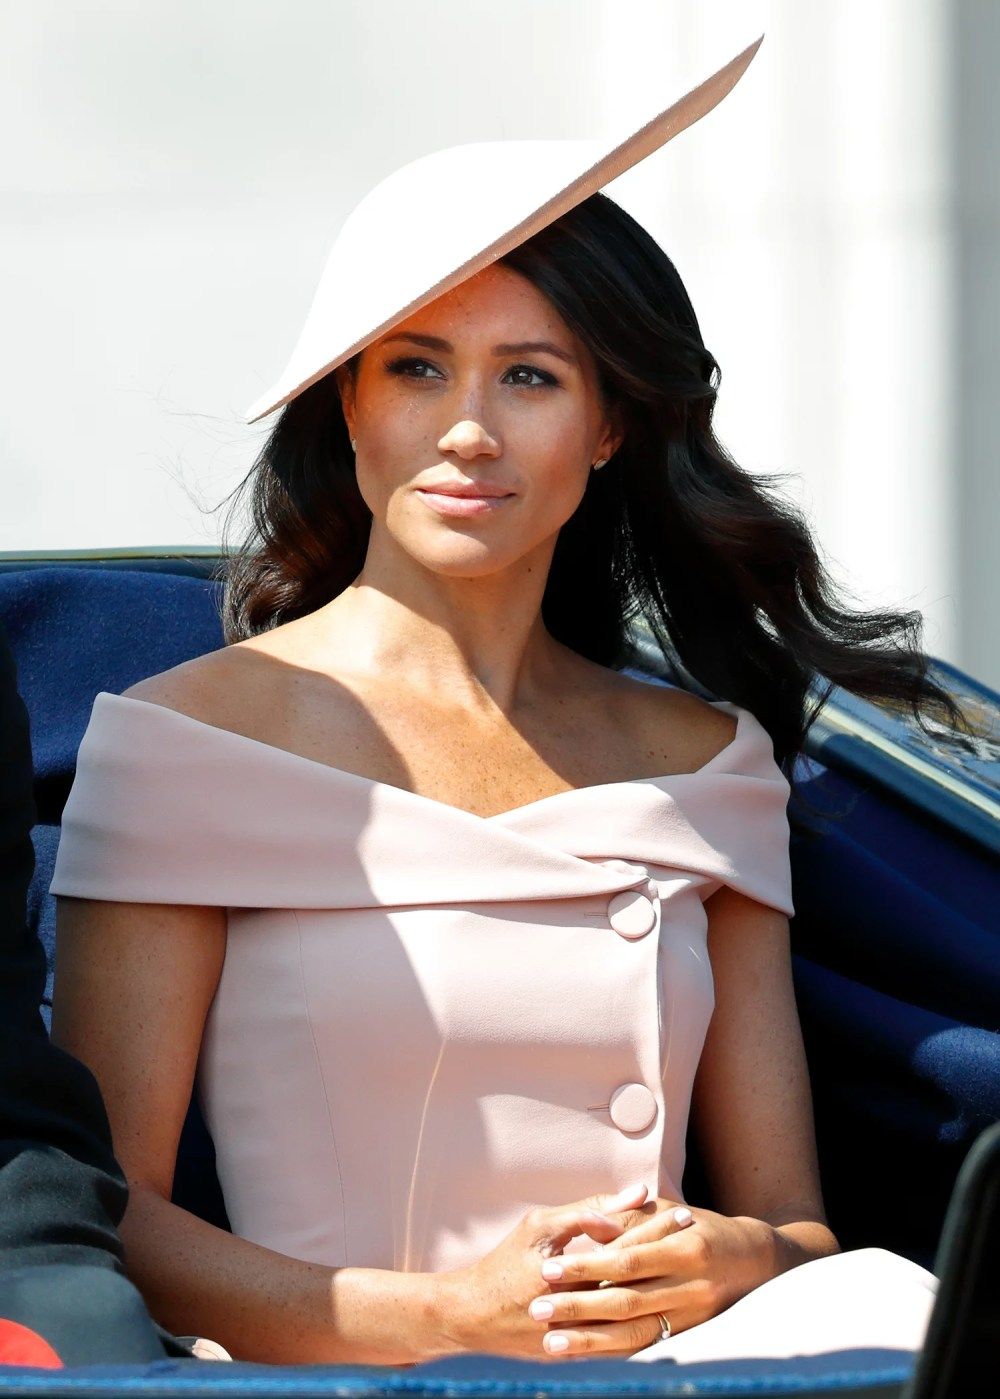 LONDON, UNITED KINGDOM - JUNE 09: (EMBARGOED FOR PUBLICATION IN UK NEWSPAPERS UNTIL 24 HOURS AFTER CREATE DATE AND TIME) Meghan, Duchess of Sussex travels down The Mall in a horse drawn carriage during Trooping The Colour 2018 on June 9, 2018 in London, England. The annual ceremony involving over 1400 guardsmen and cavalry, is believed to have first been performed during the reign of King Charles II. The parade marks the official birthday of the Sovereign, even though the Queen's actual birthday is on April 21st. (Photo by Max Mumby/Indigo/Getty Images)